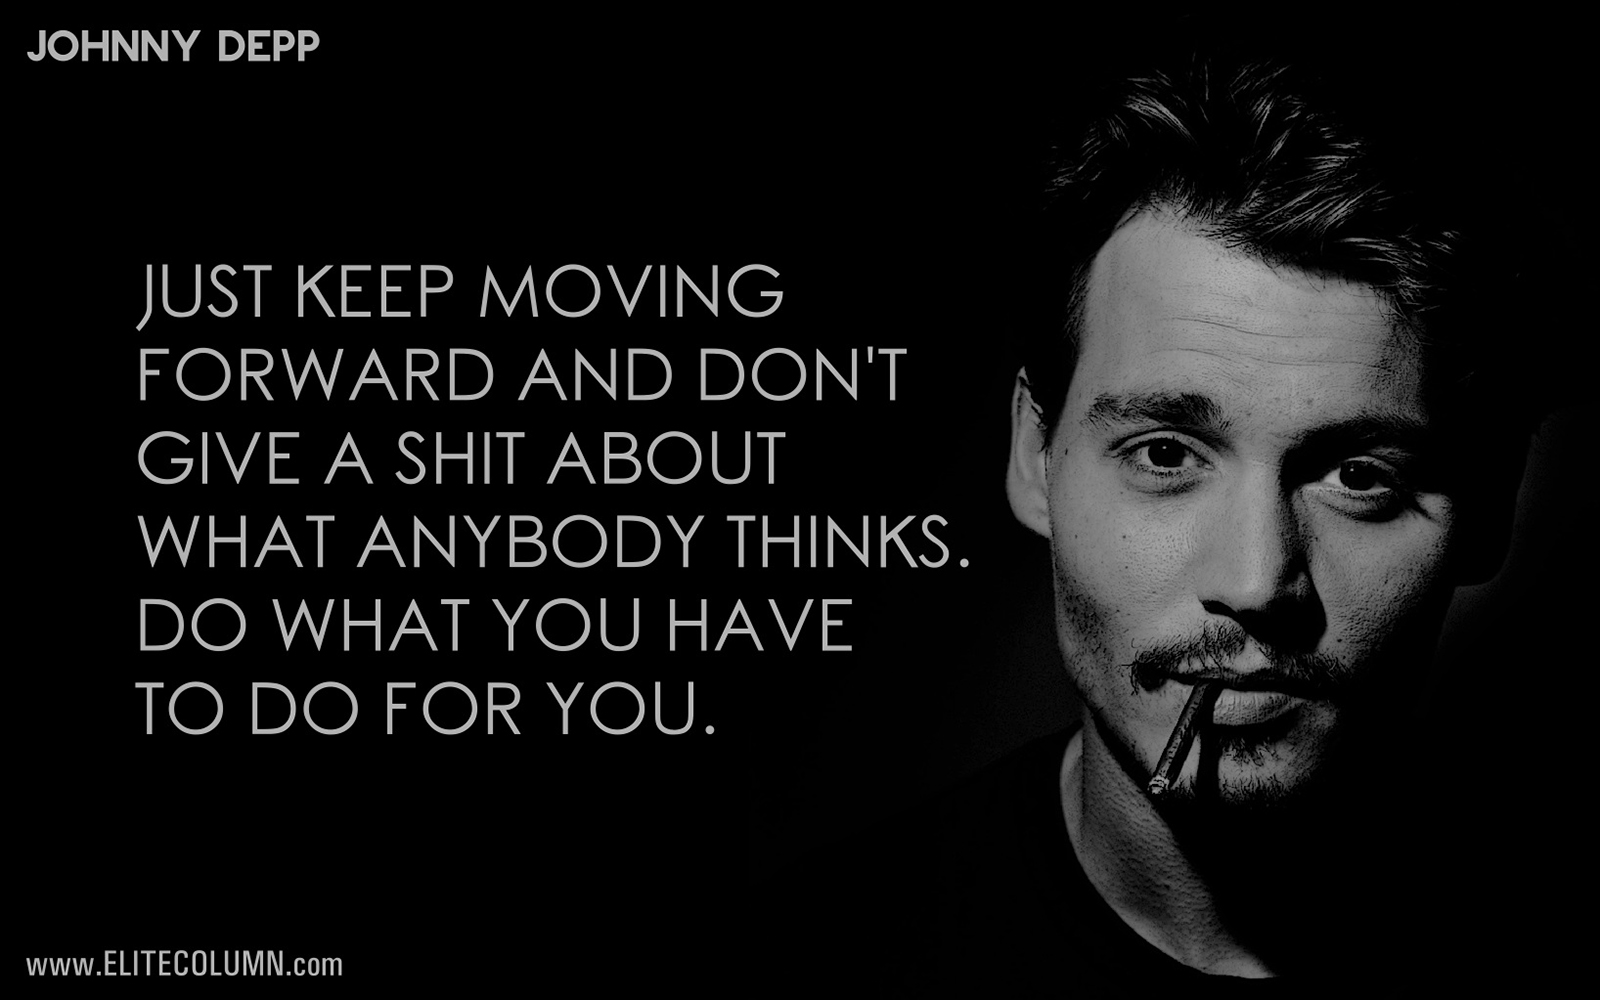 Johnny Depp Quotes (11)